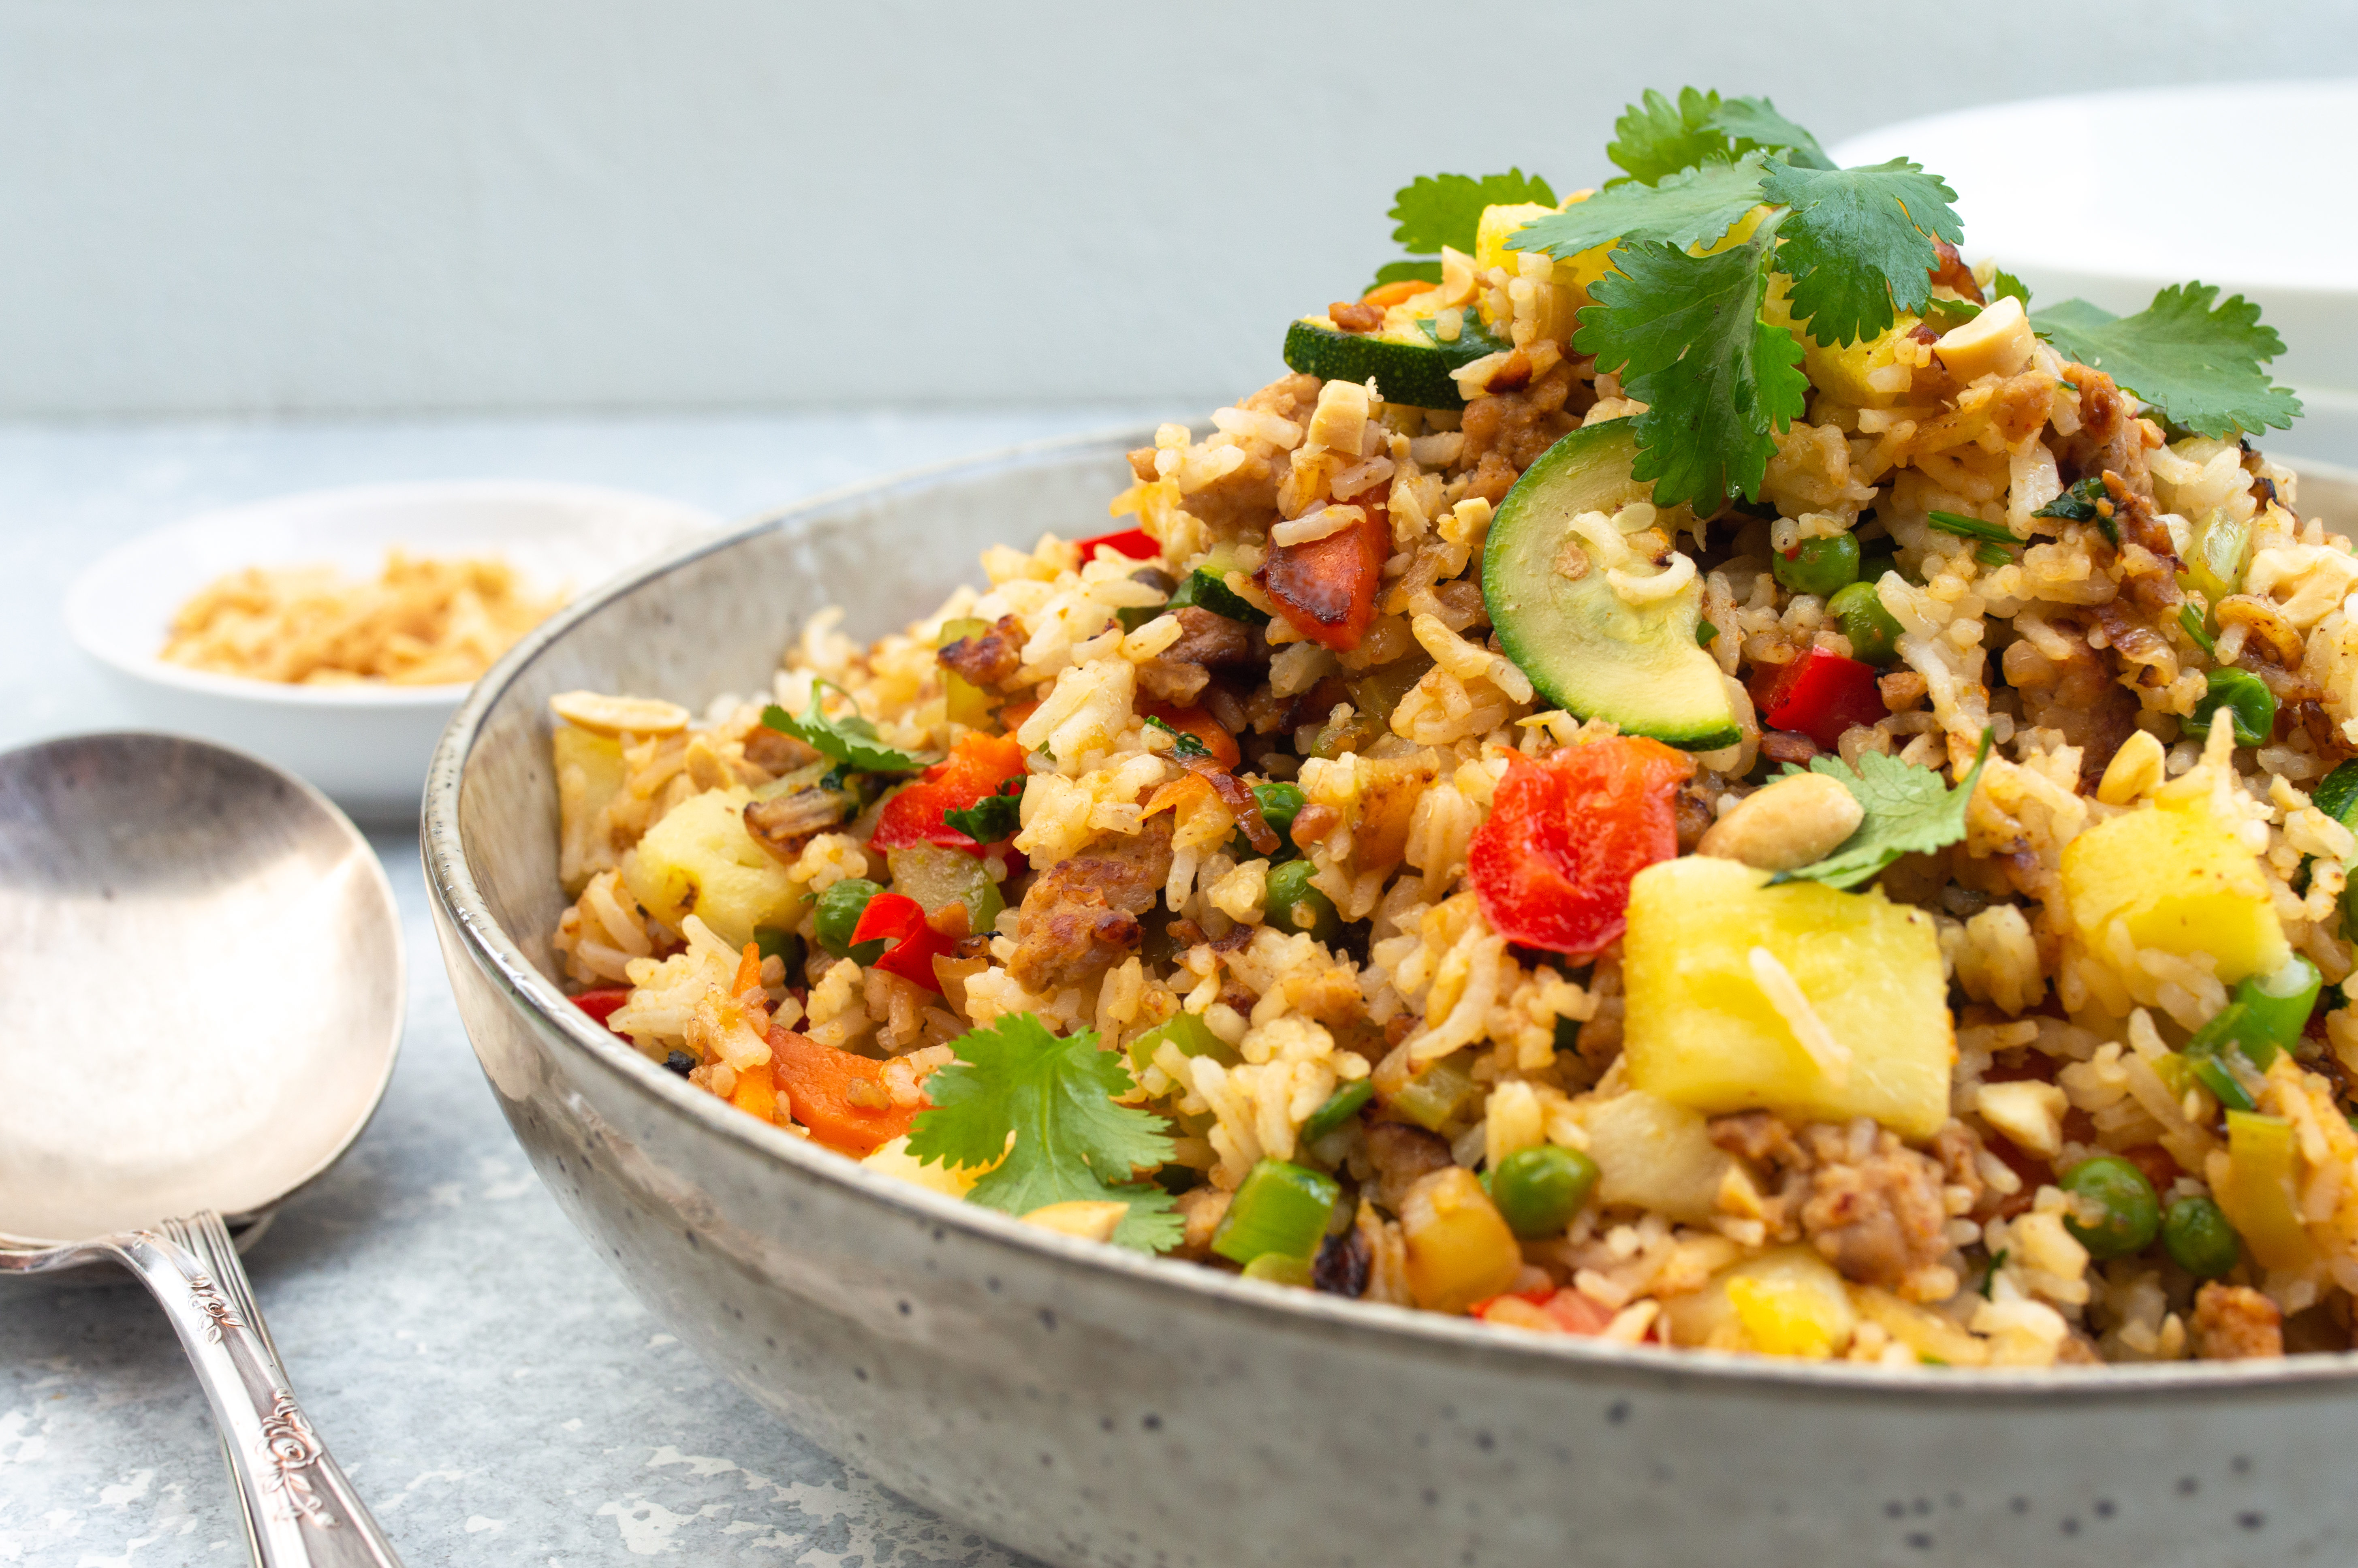 Pork and pineapple fried rice